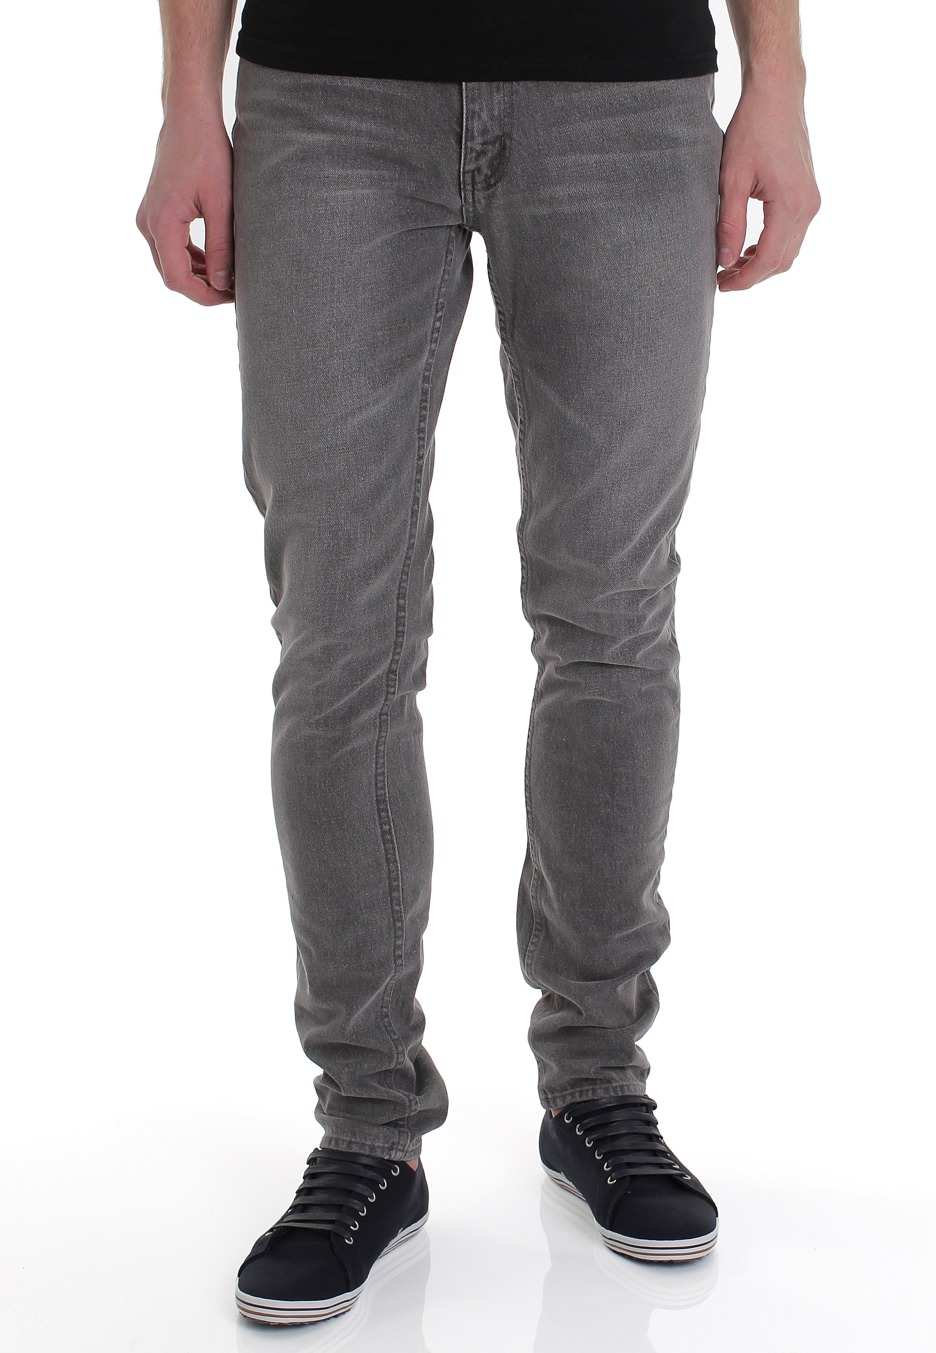 Best Men's Pants Online